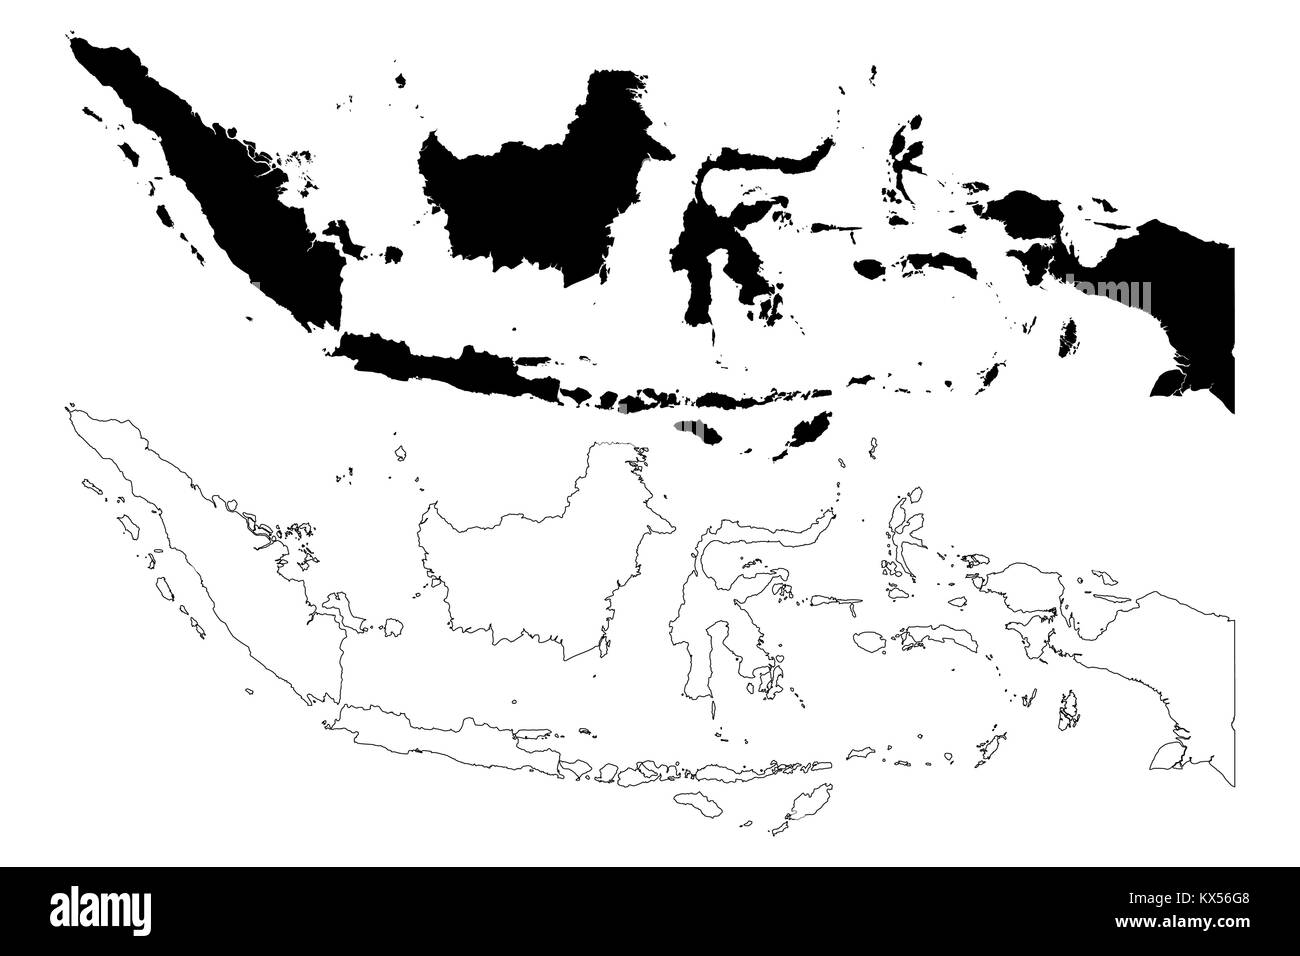 Indonesia map vector illustration, scribble sketch Republic of Indonesia - Stock Image